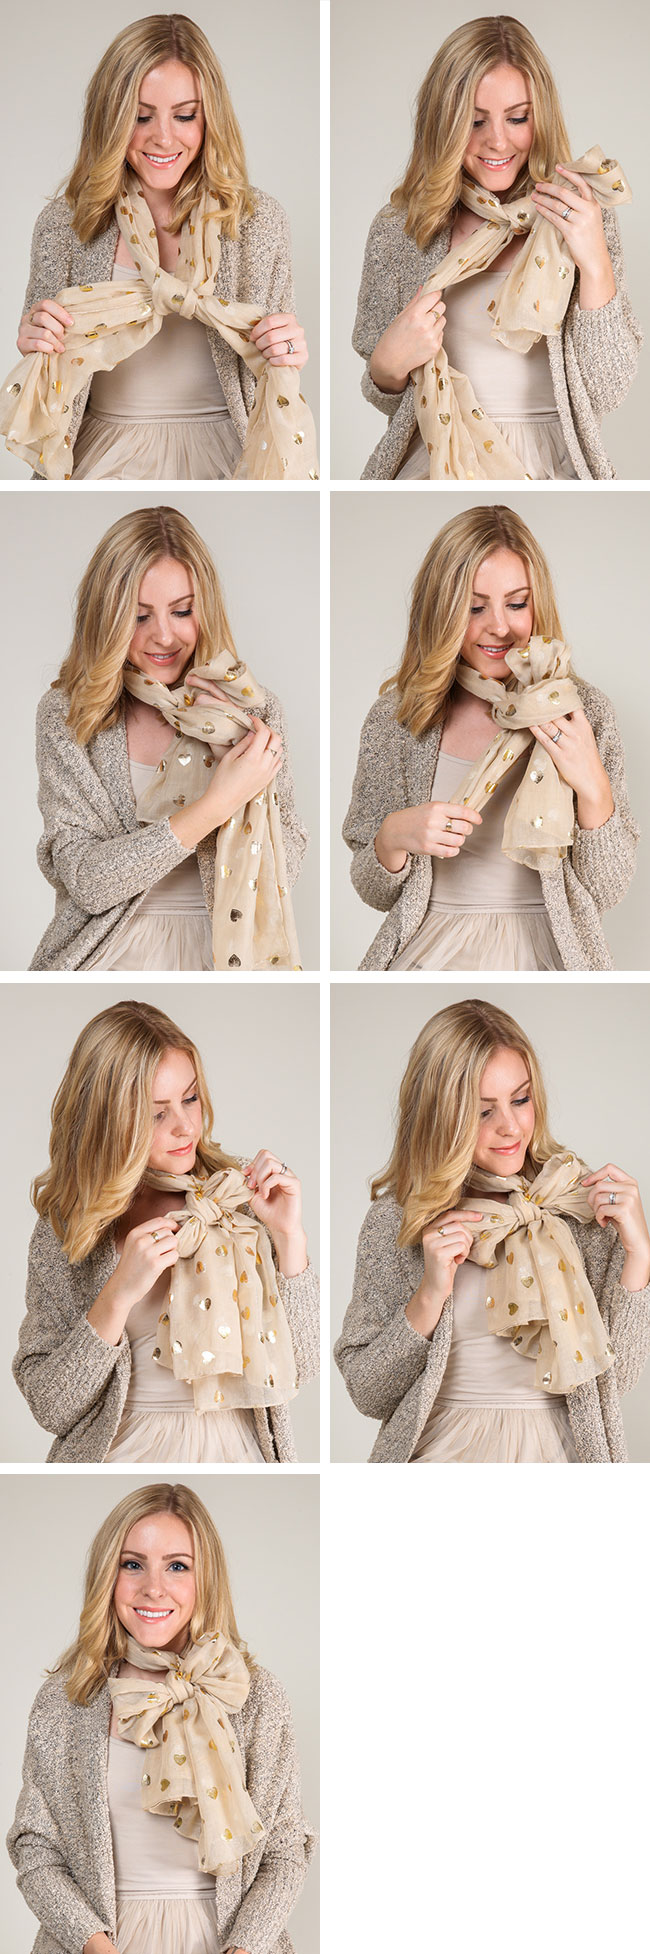 How to Tie A Scarf, 9 Ways